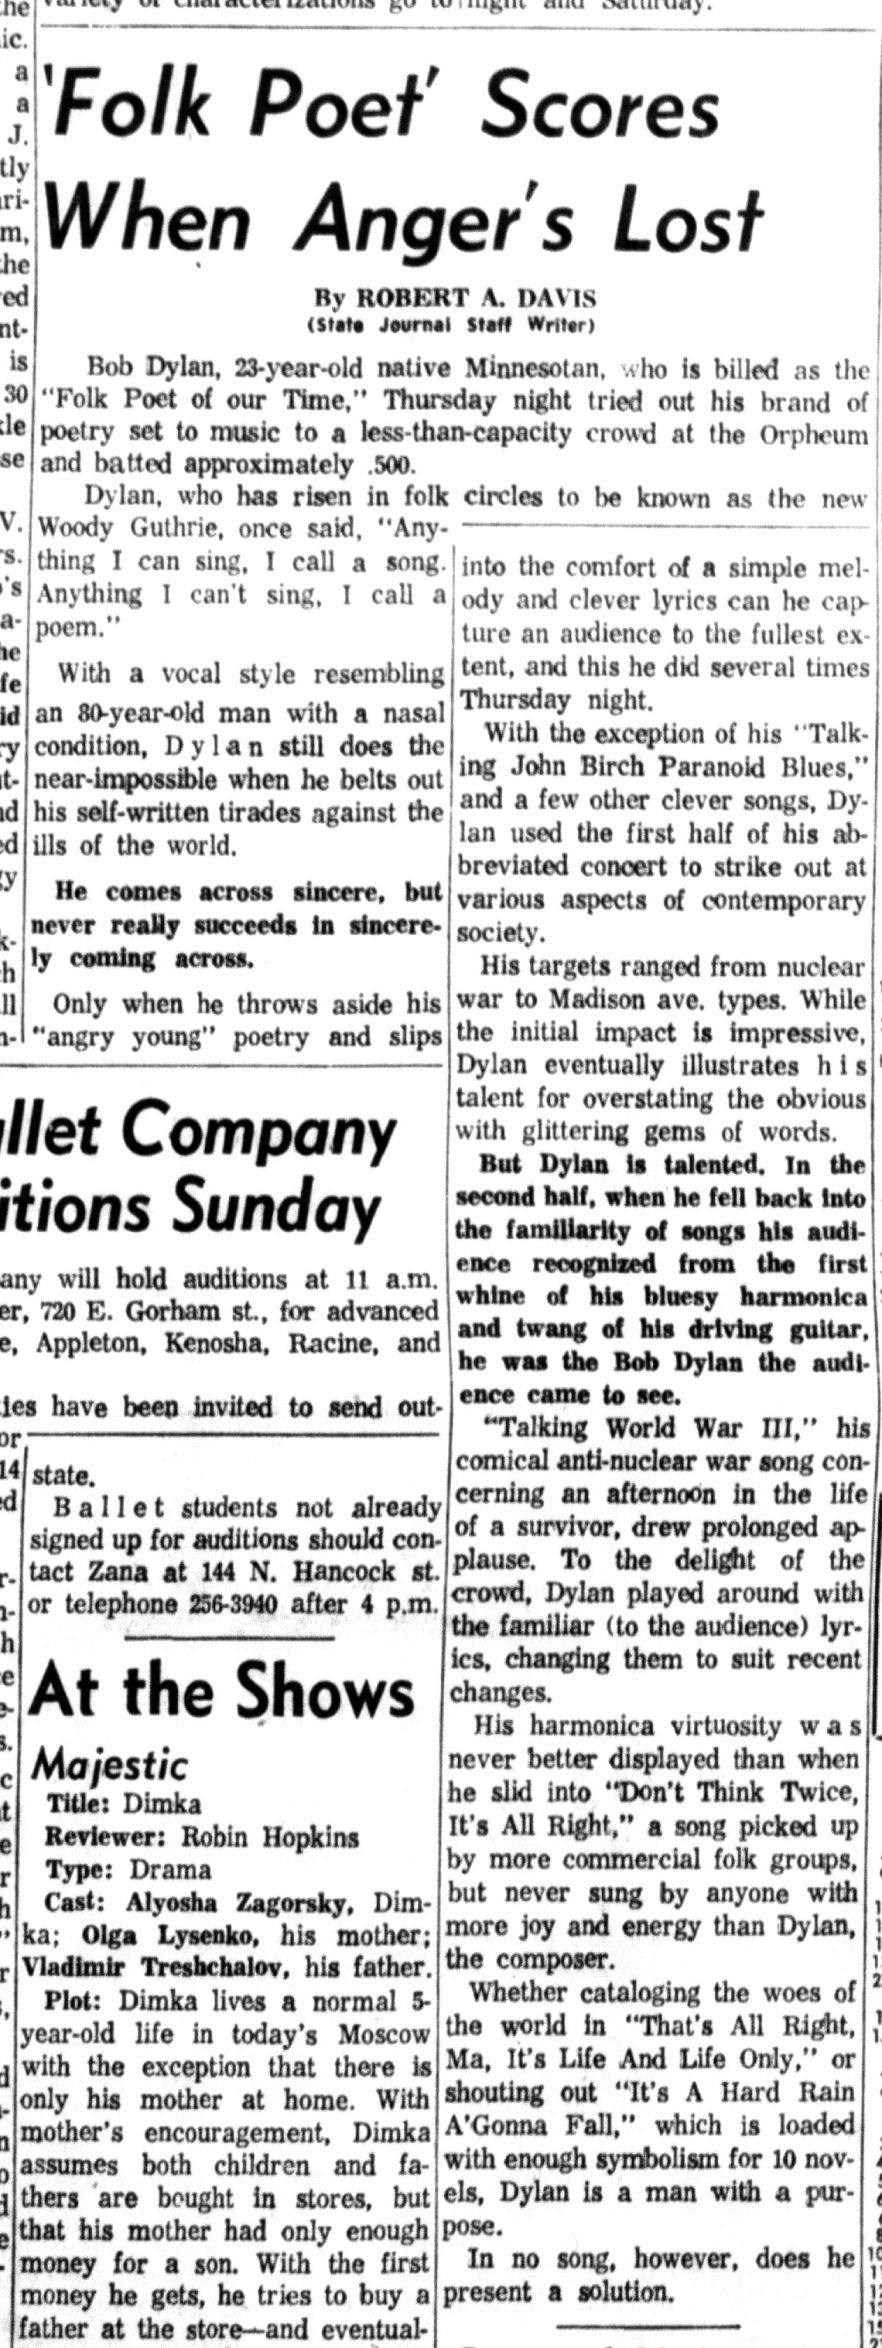 1964 Bob Dylan concert review (Wisconsin State Journal)